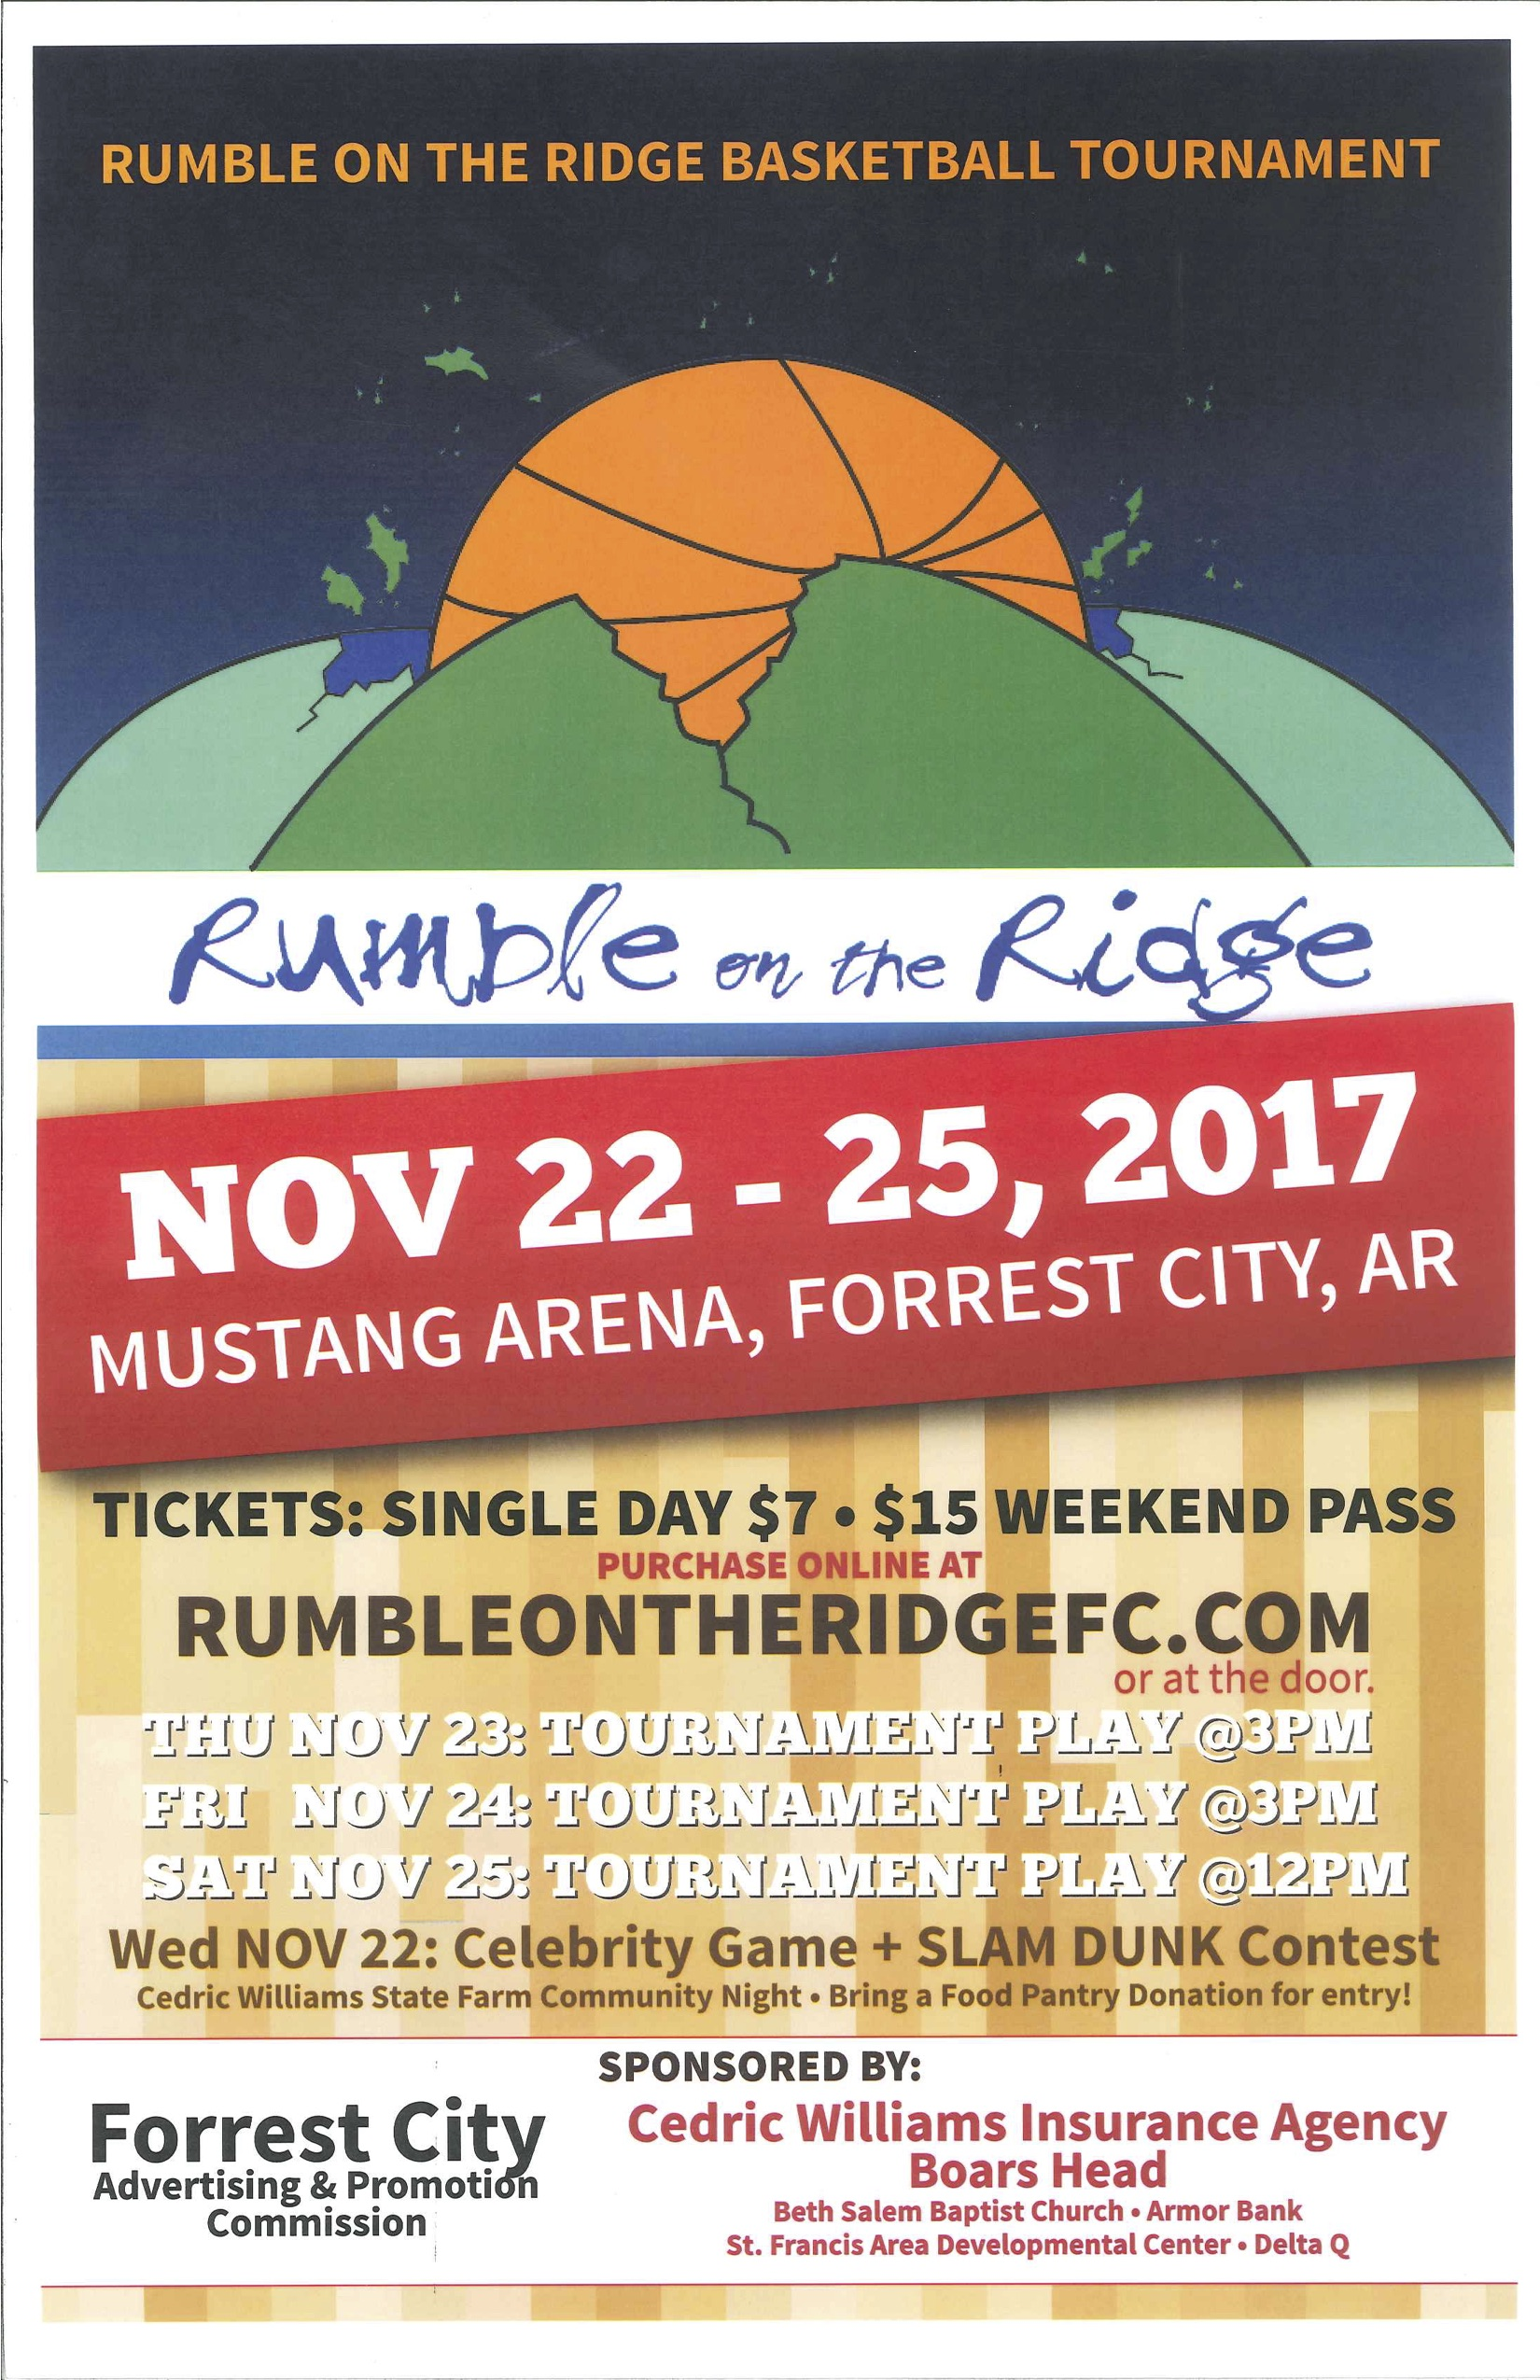 Rumble on the Ridge Poster - Tournament Info